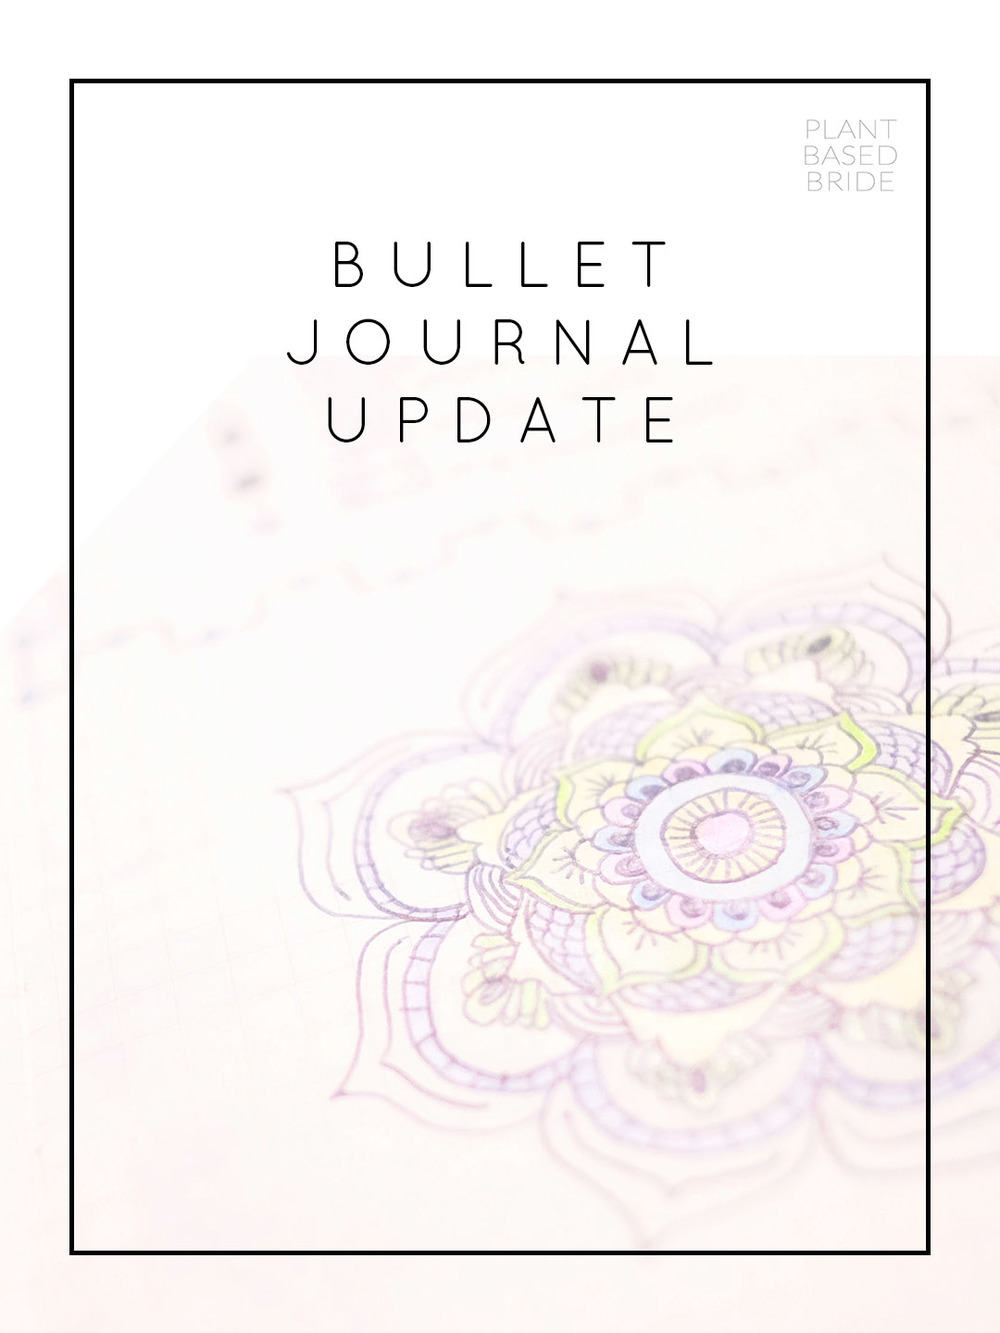 Bullet Journal Update + Tour! // Plant Based Bride // Bujo